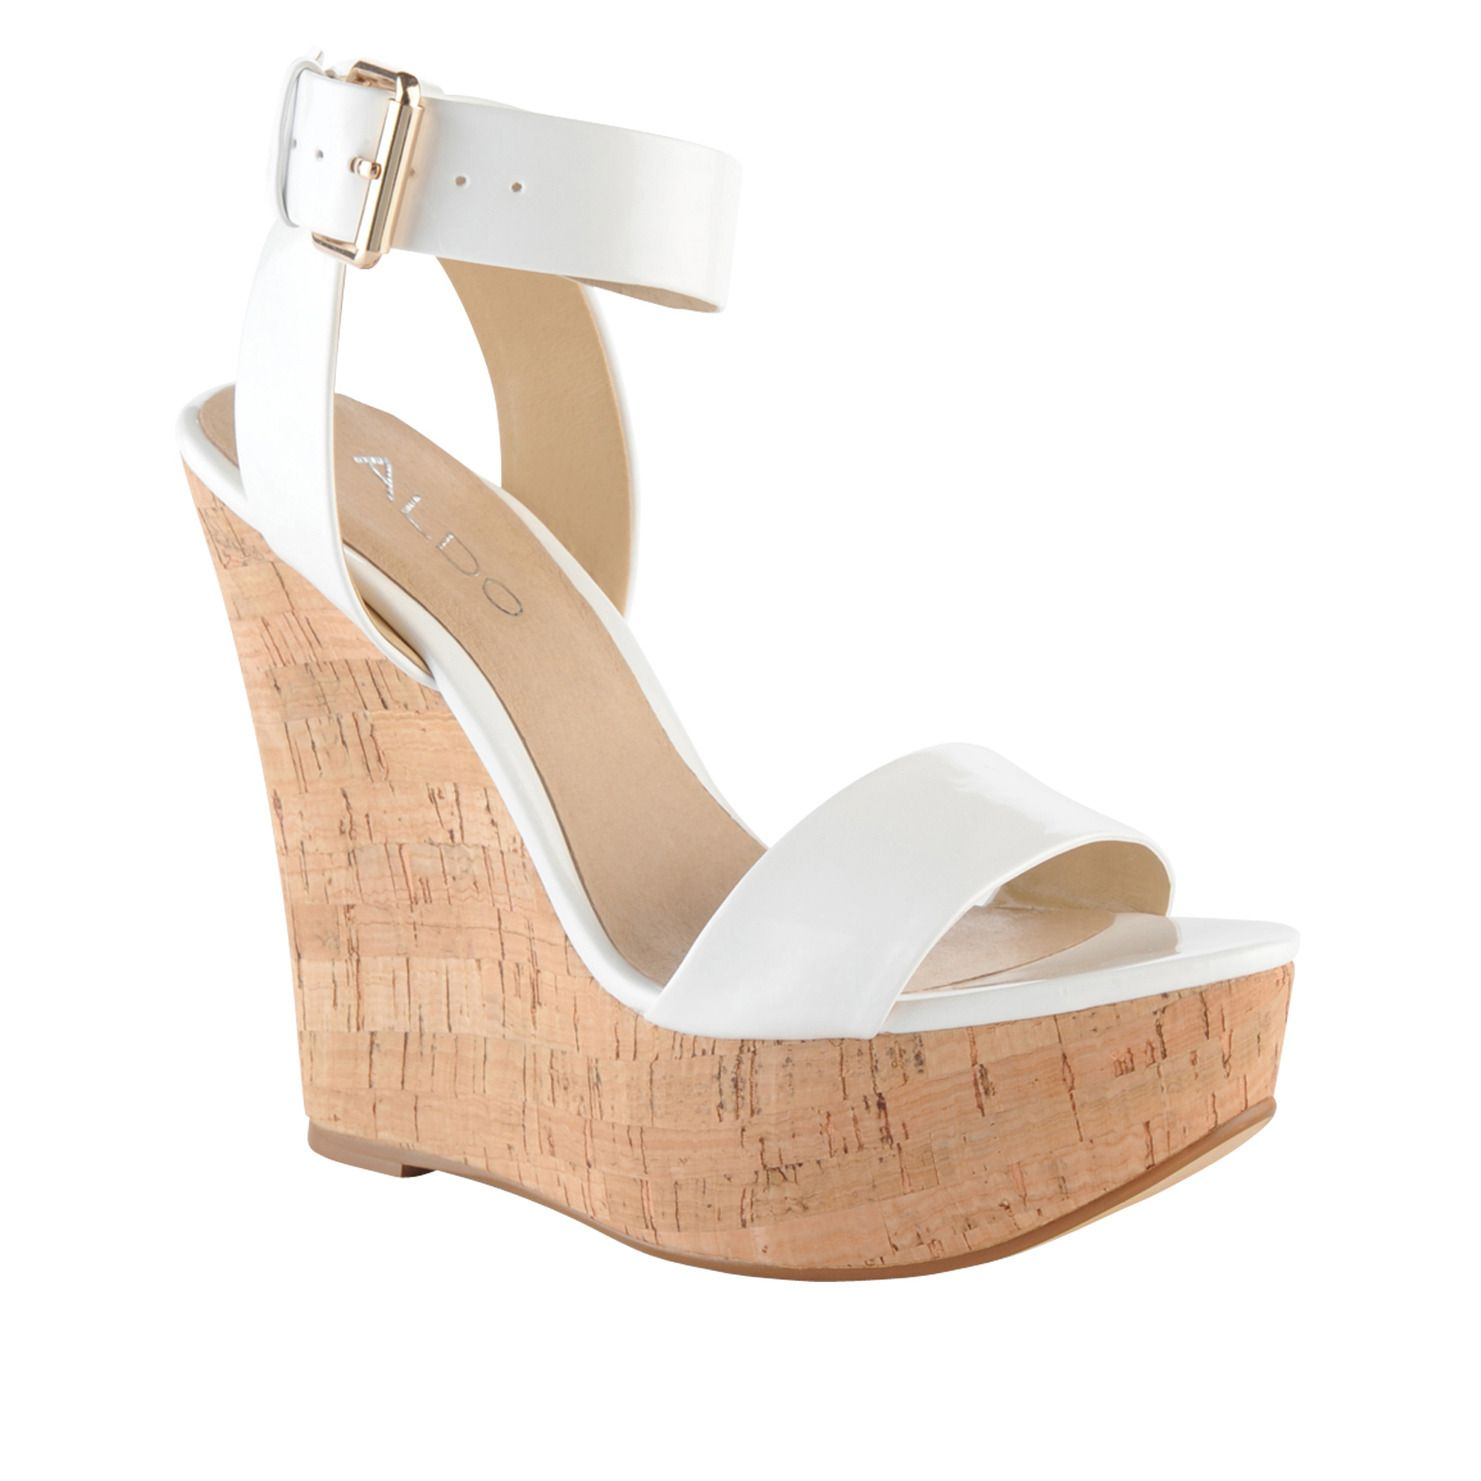 ba1cdd47be6 HARVAT - women s wedges sandals for sale at ALDO Shoes. White Wedges